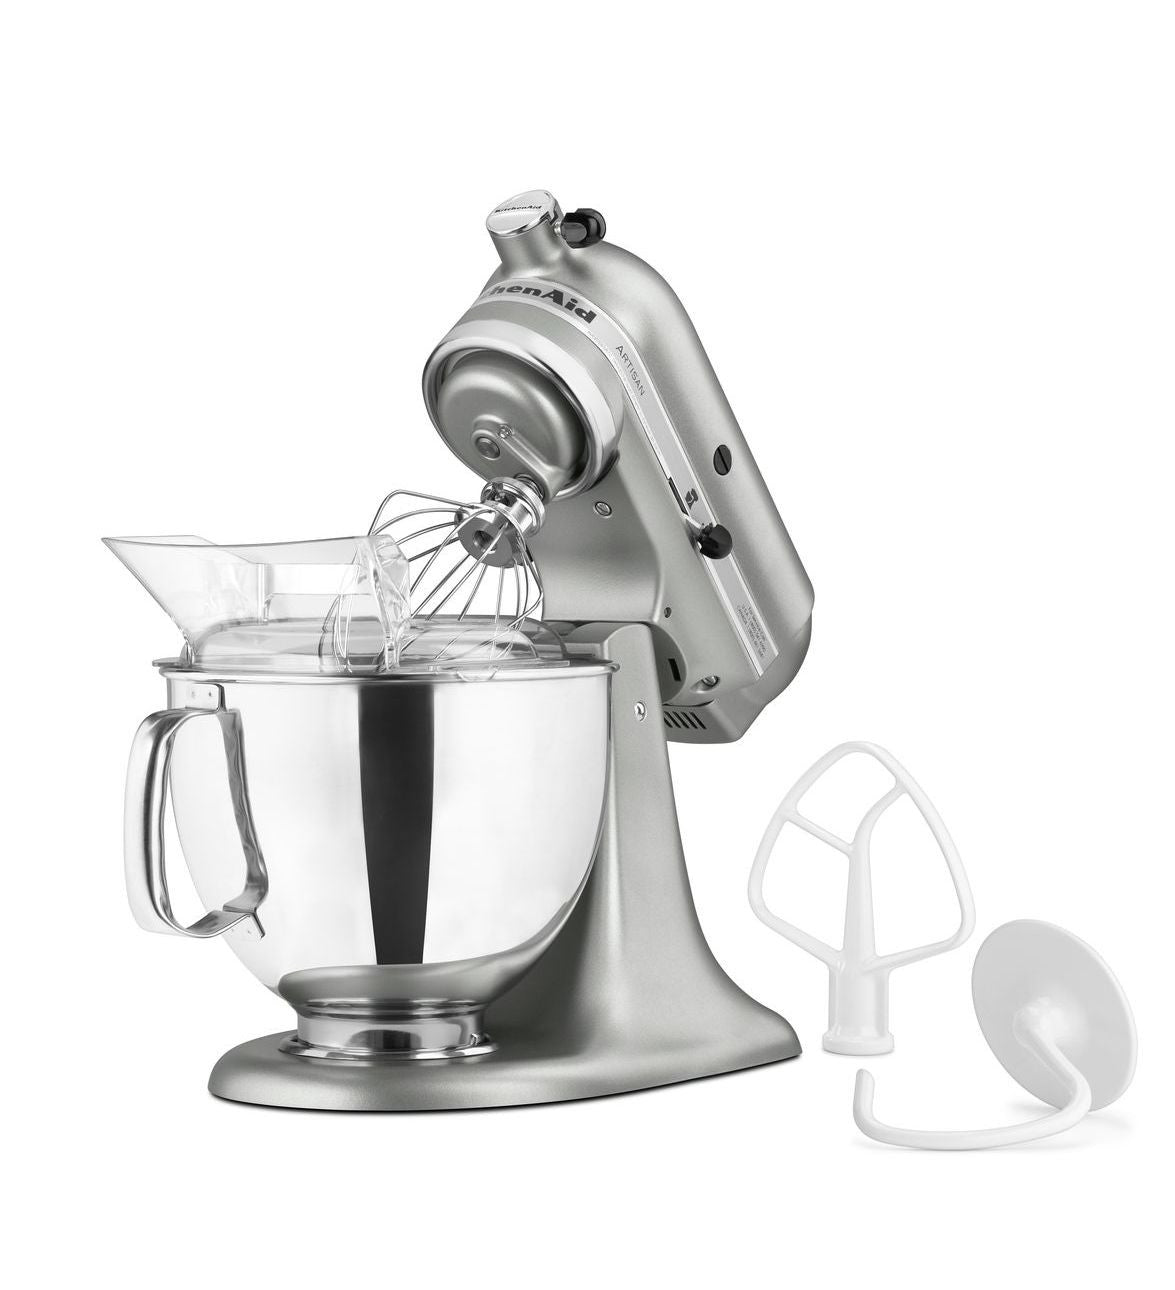 Kitchenaid 5 Qt. Artisan Series with Pouring Shield - Contour Silver KSM150PSCU